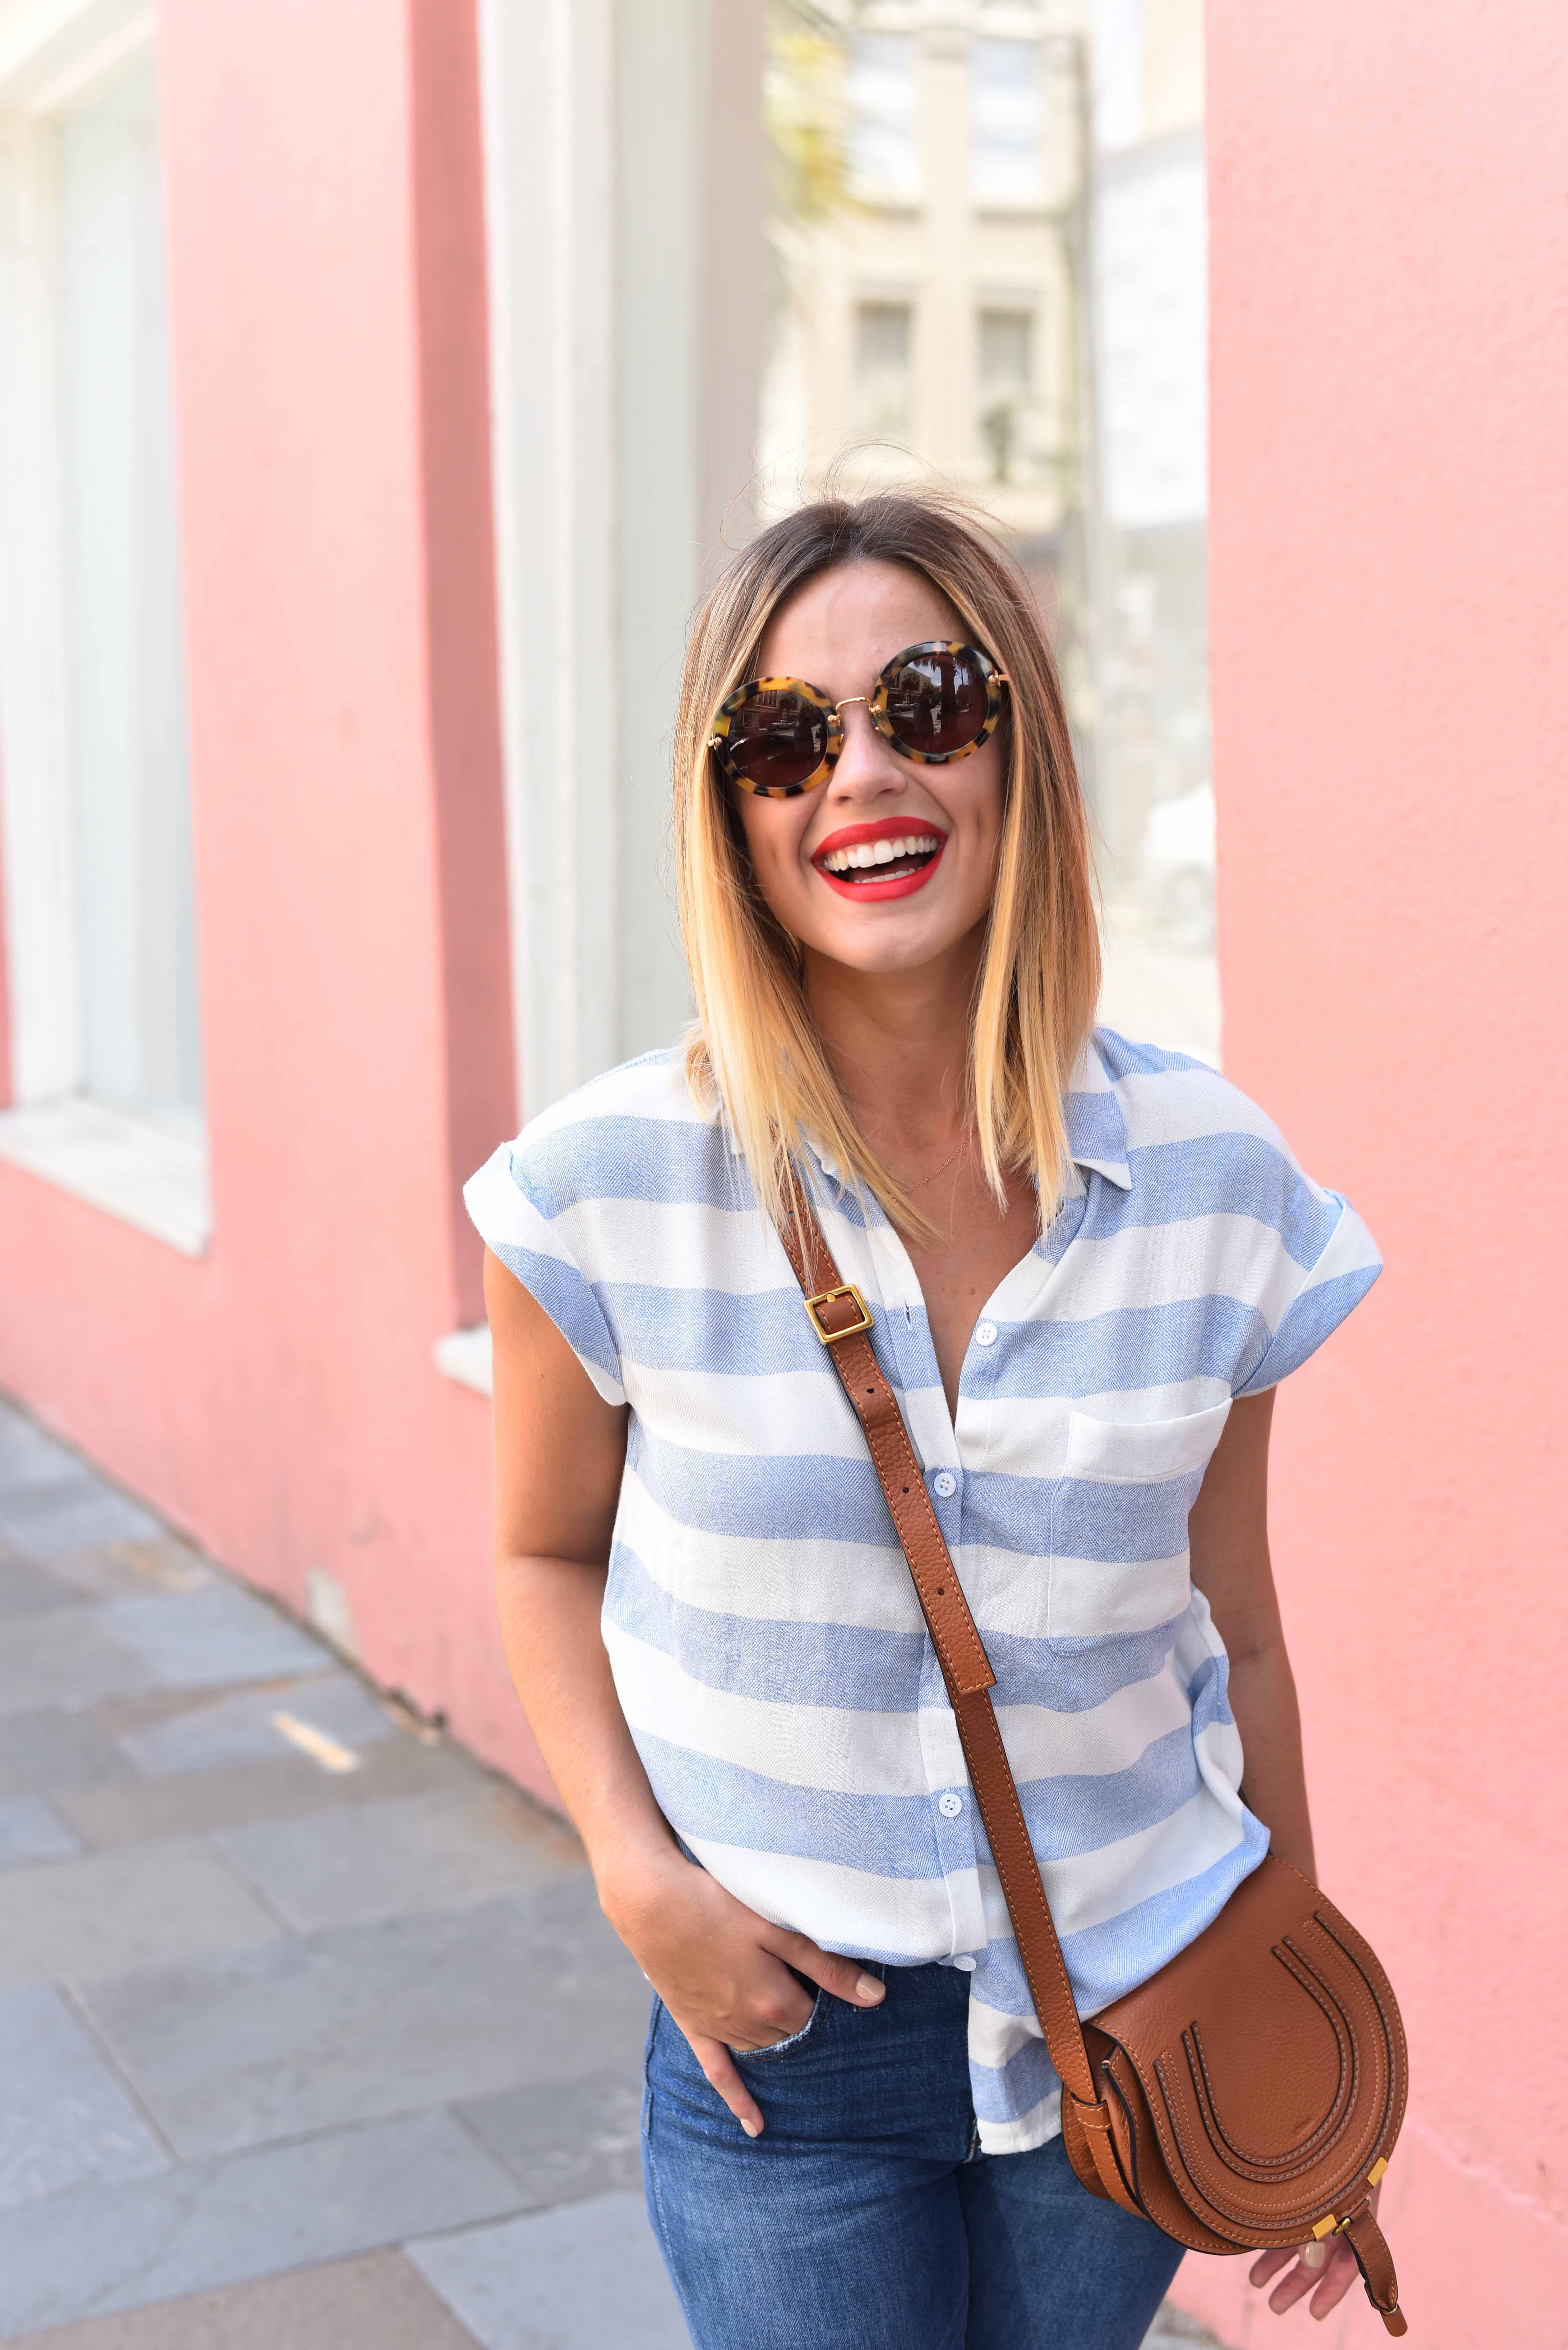 How To Monetize My Fashion Blog